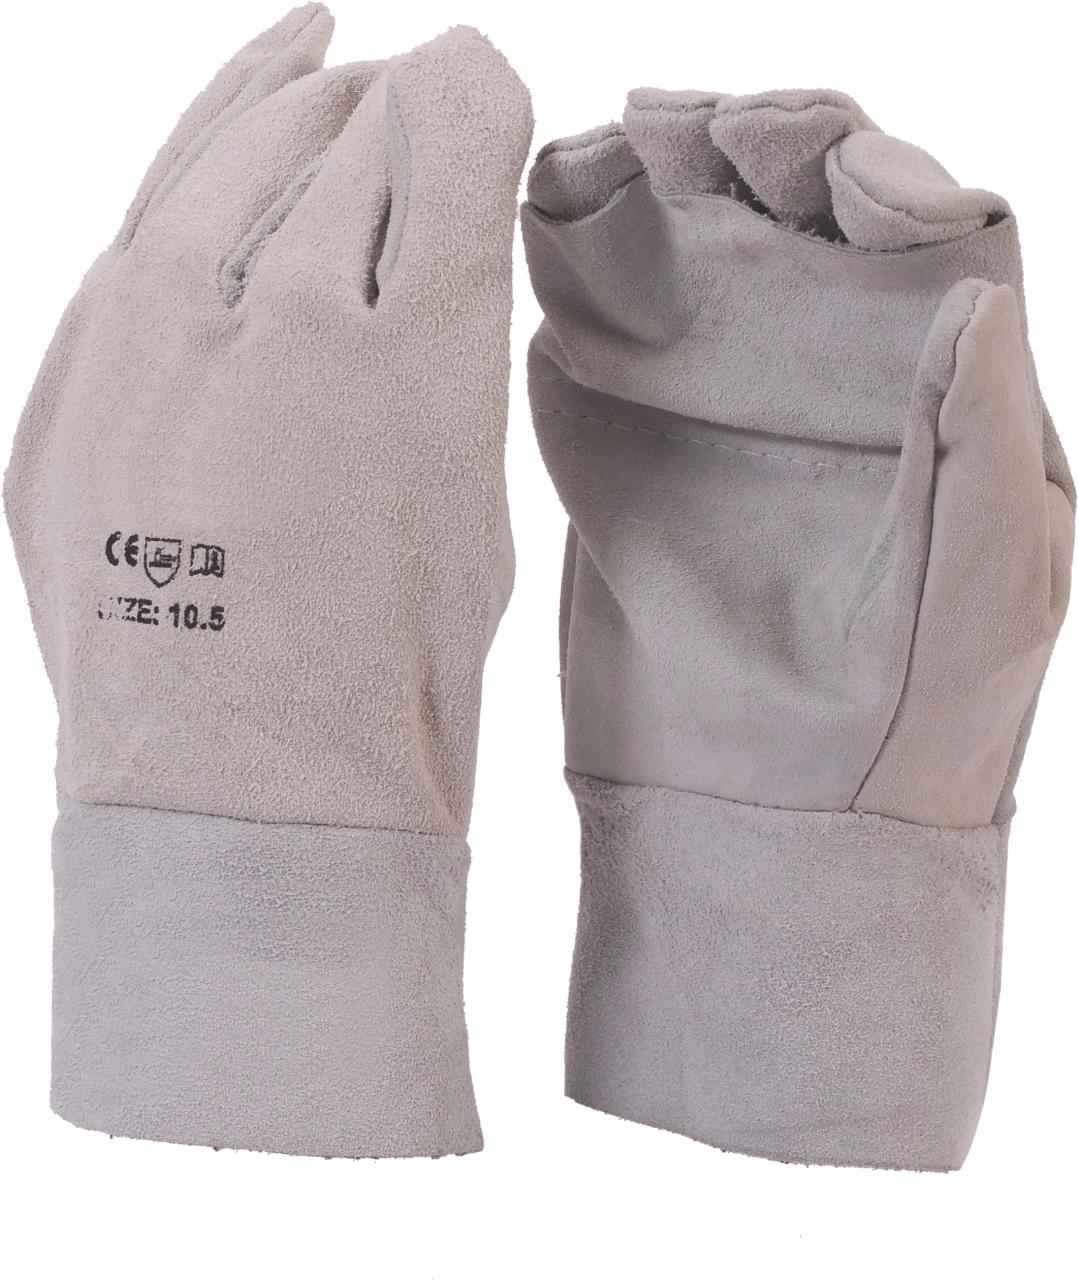 Leather Glove Leather Apron Palm 8 inch